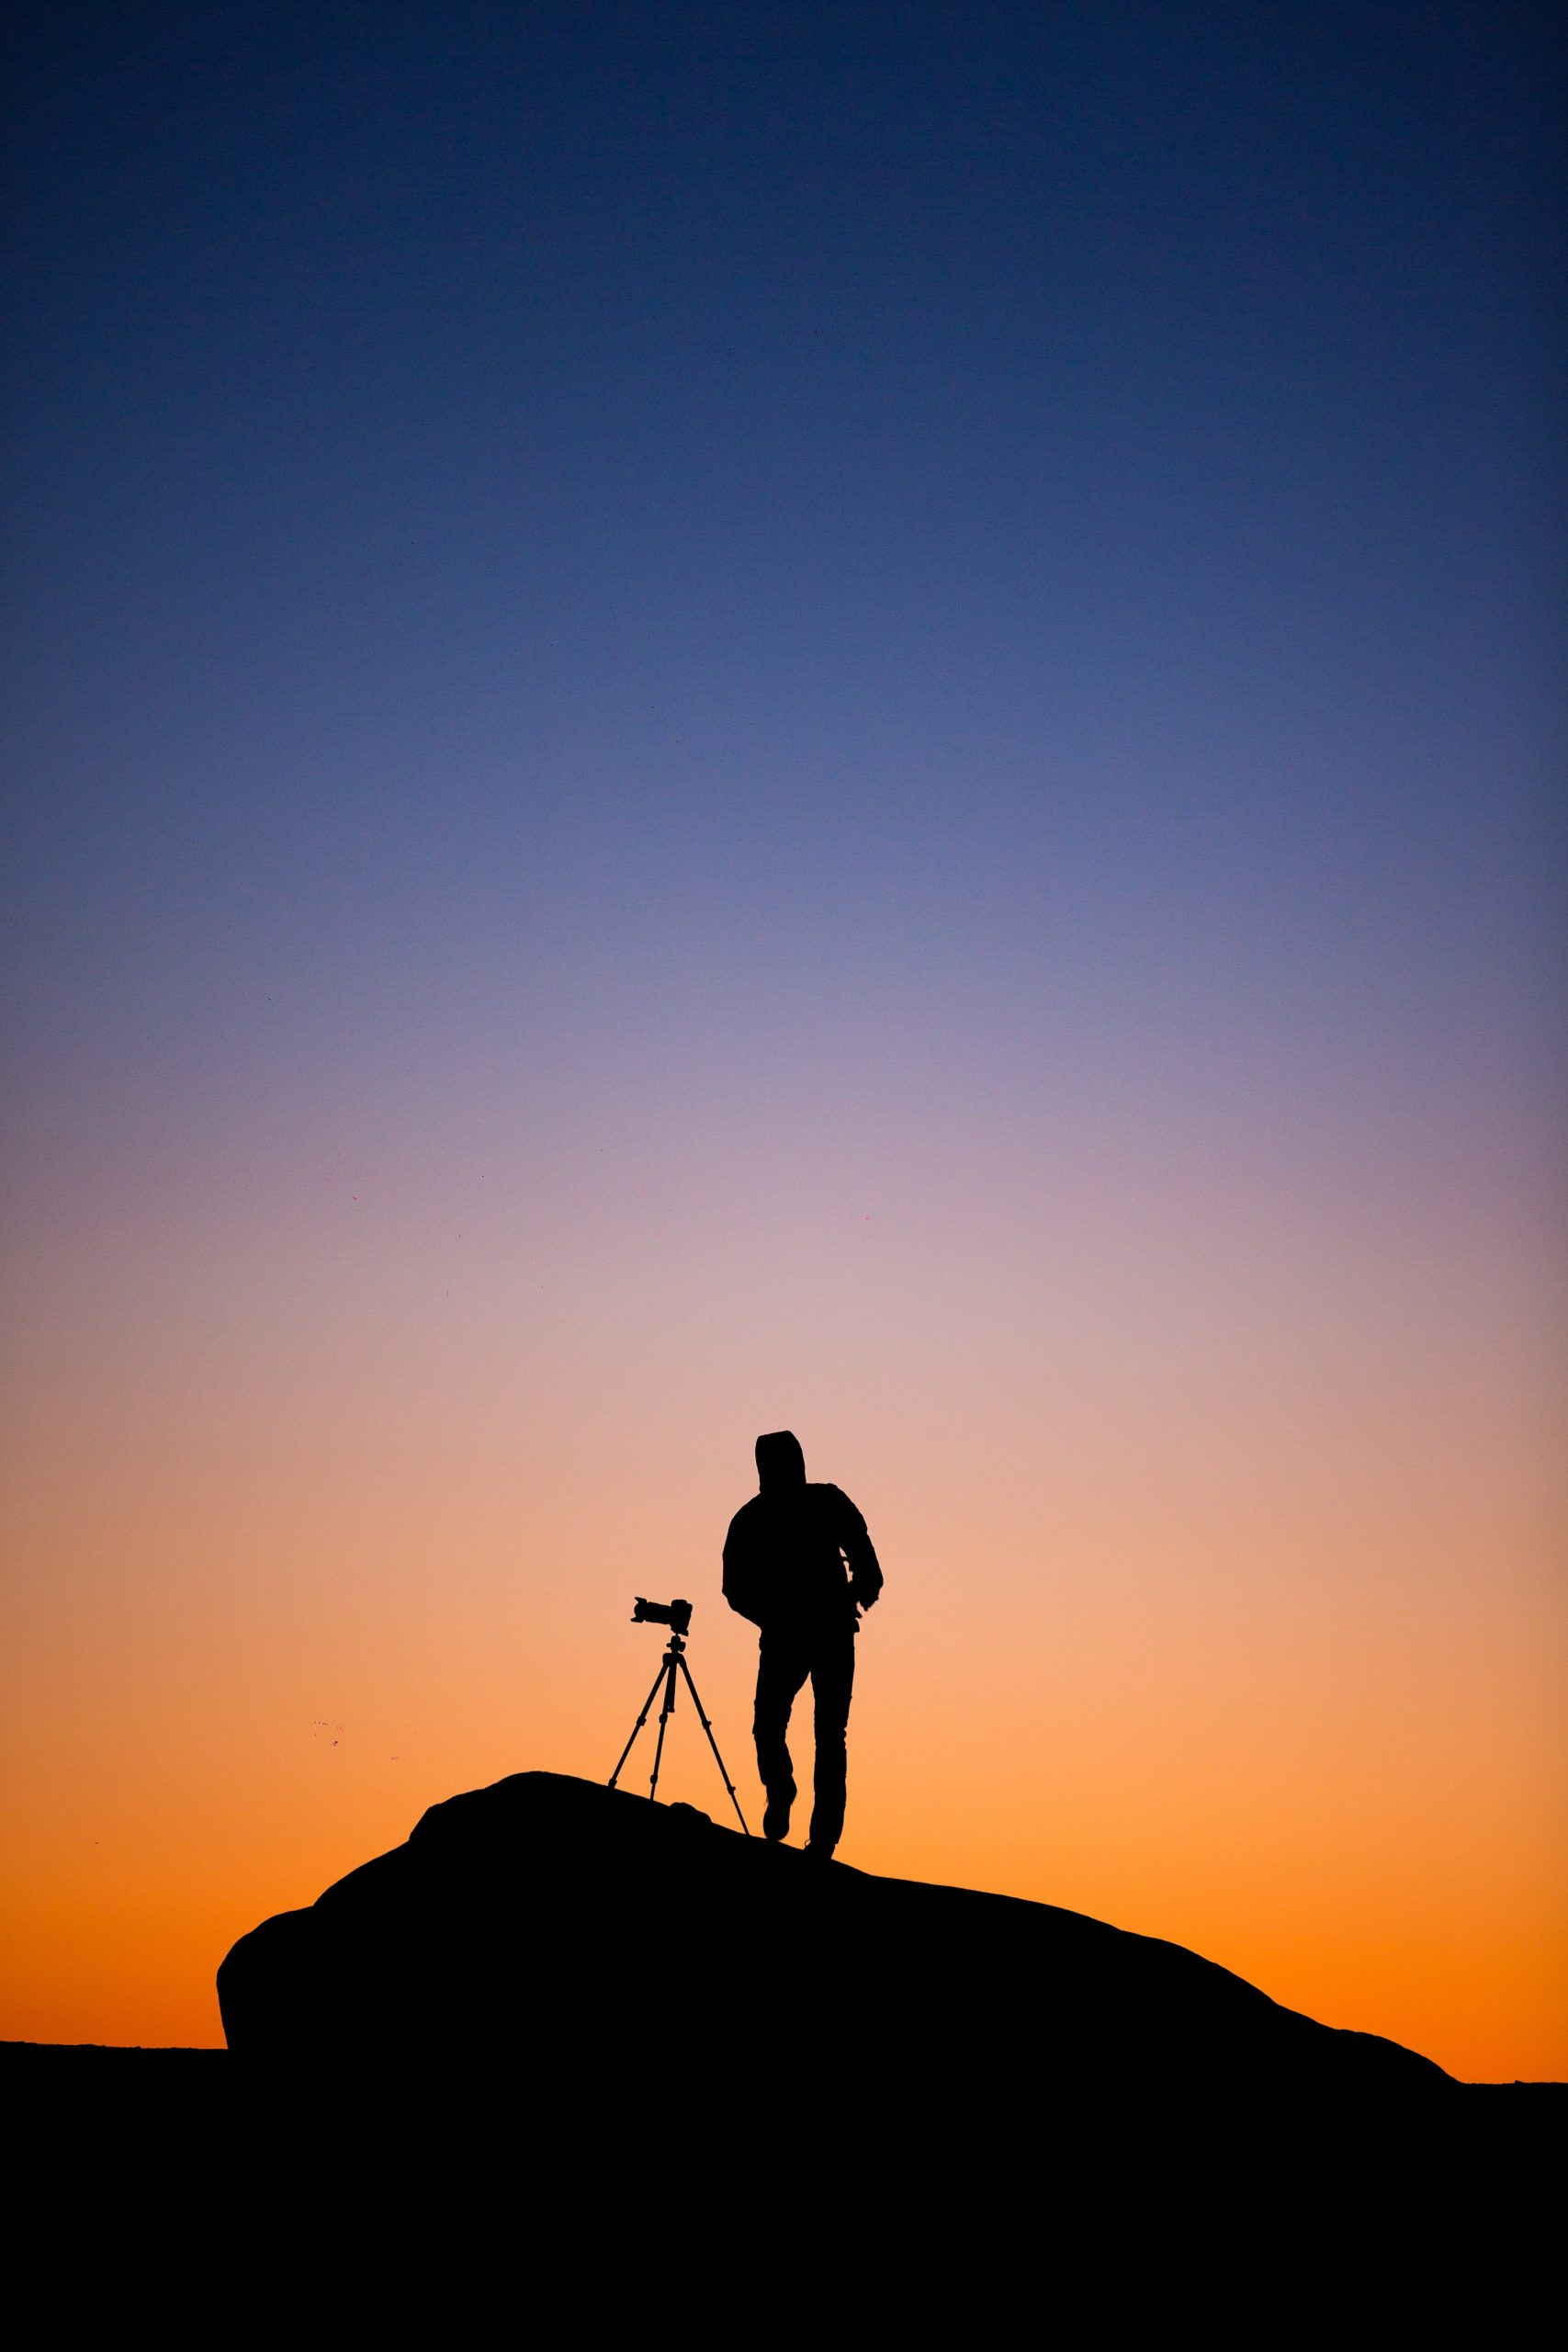 silhouette of person standing beside DSLR camera with stand at sunset